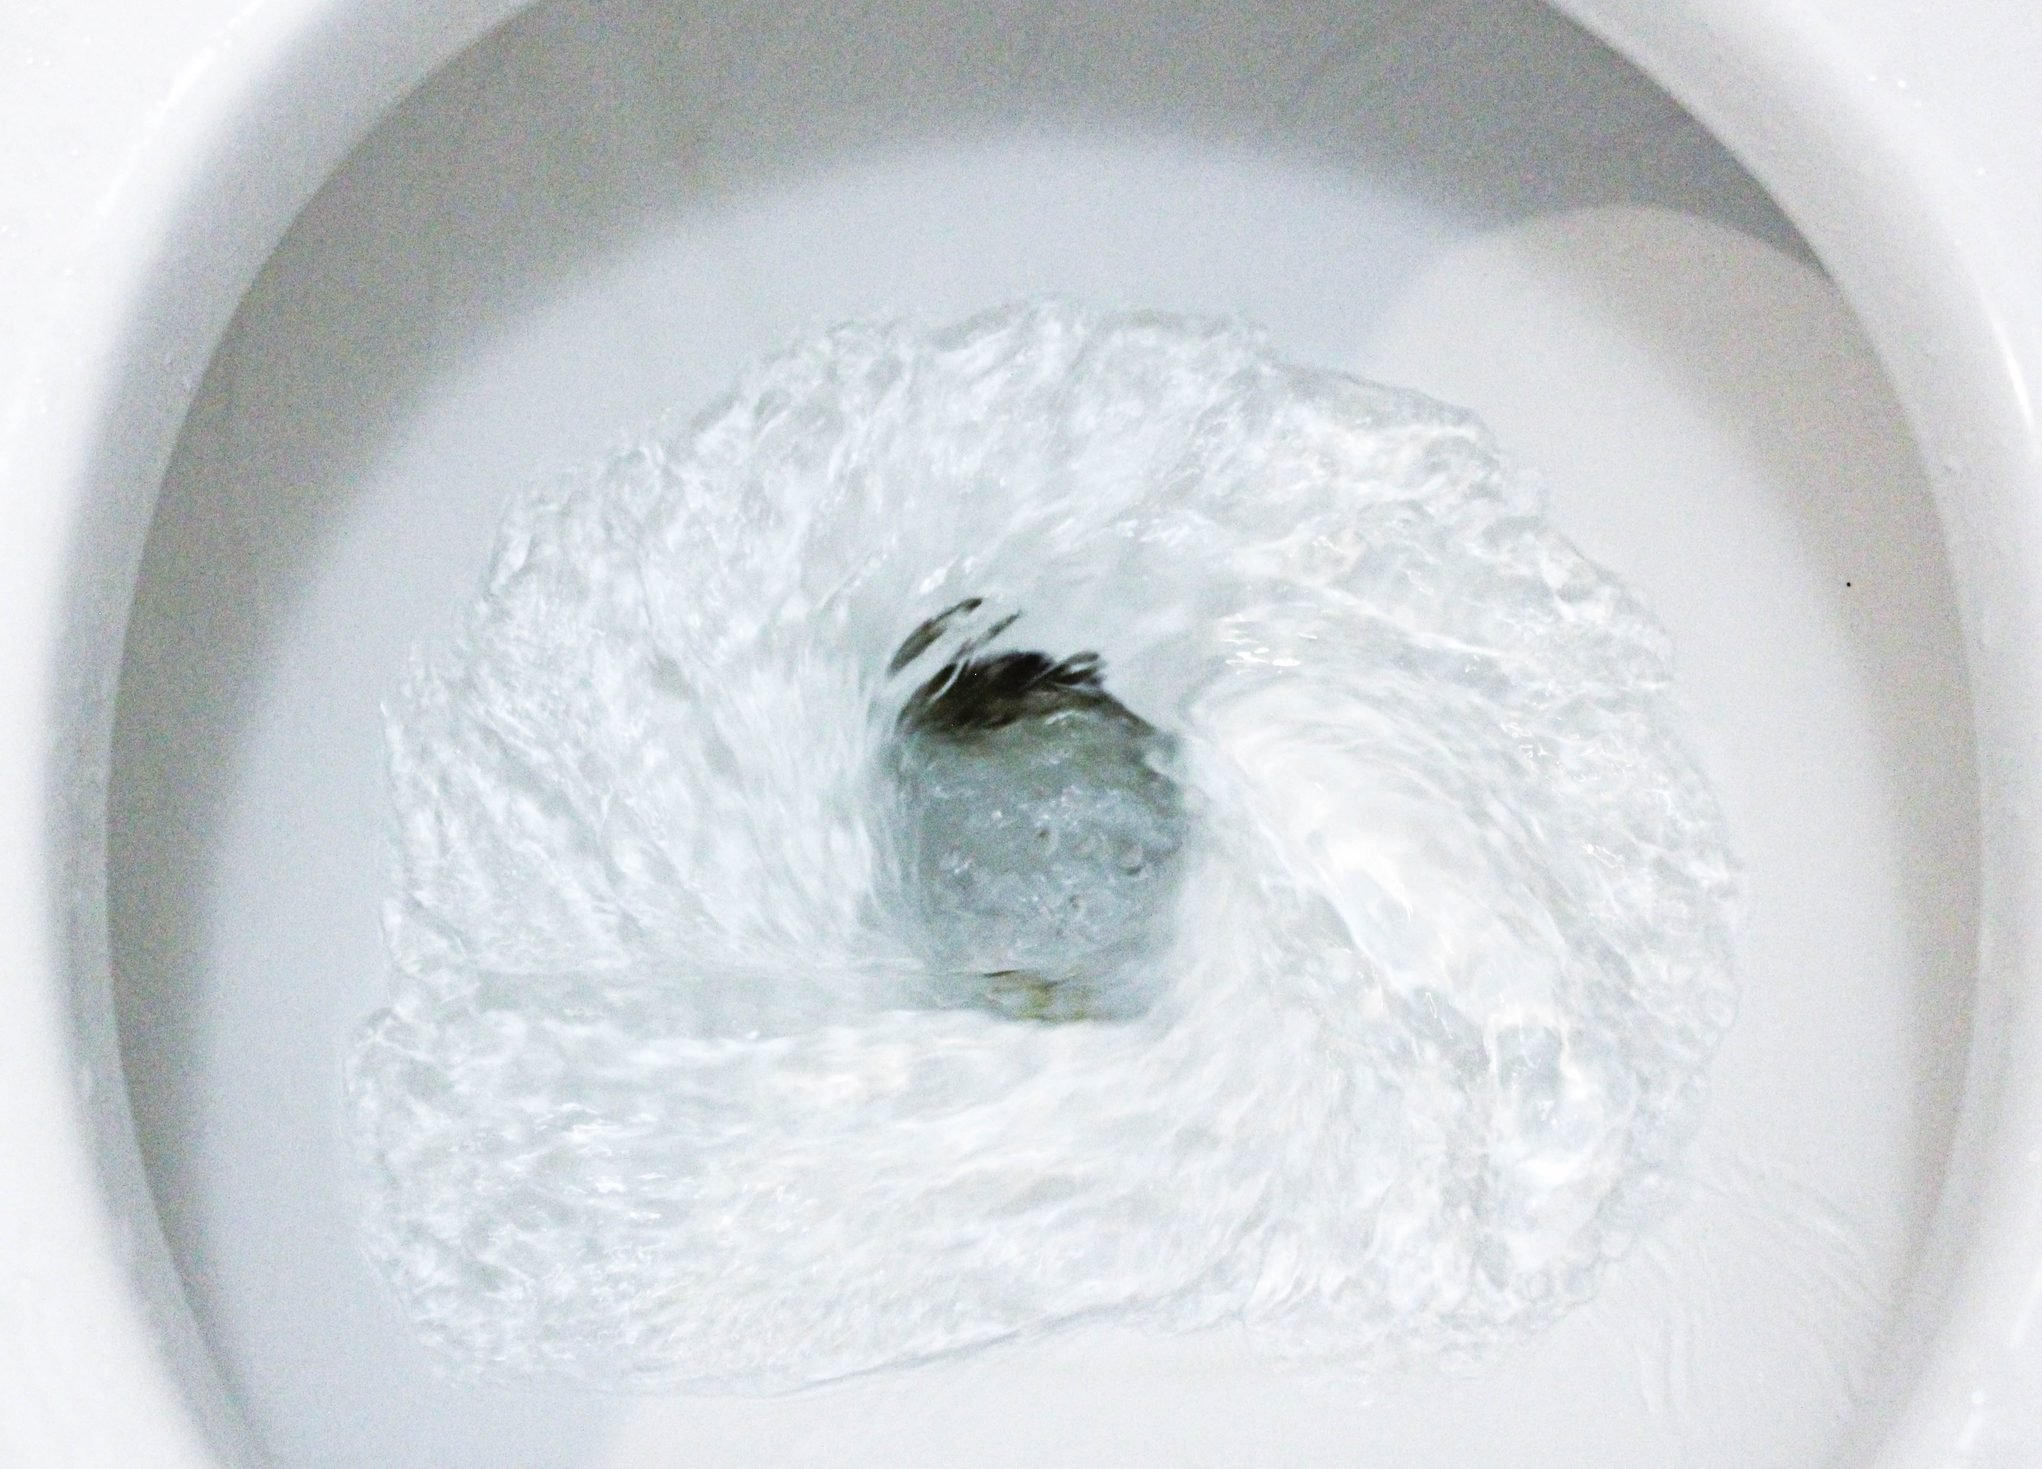 selective focus close up flushing toilet bowl for sanitary